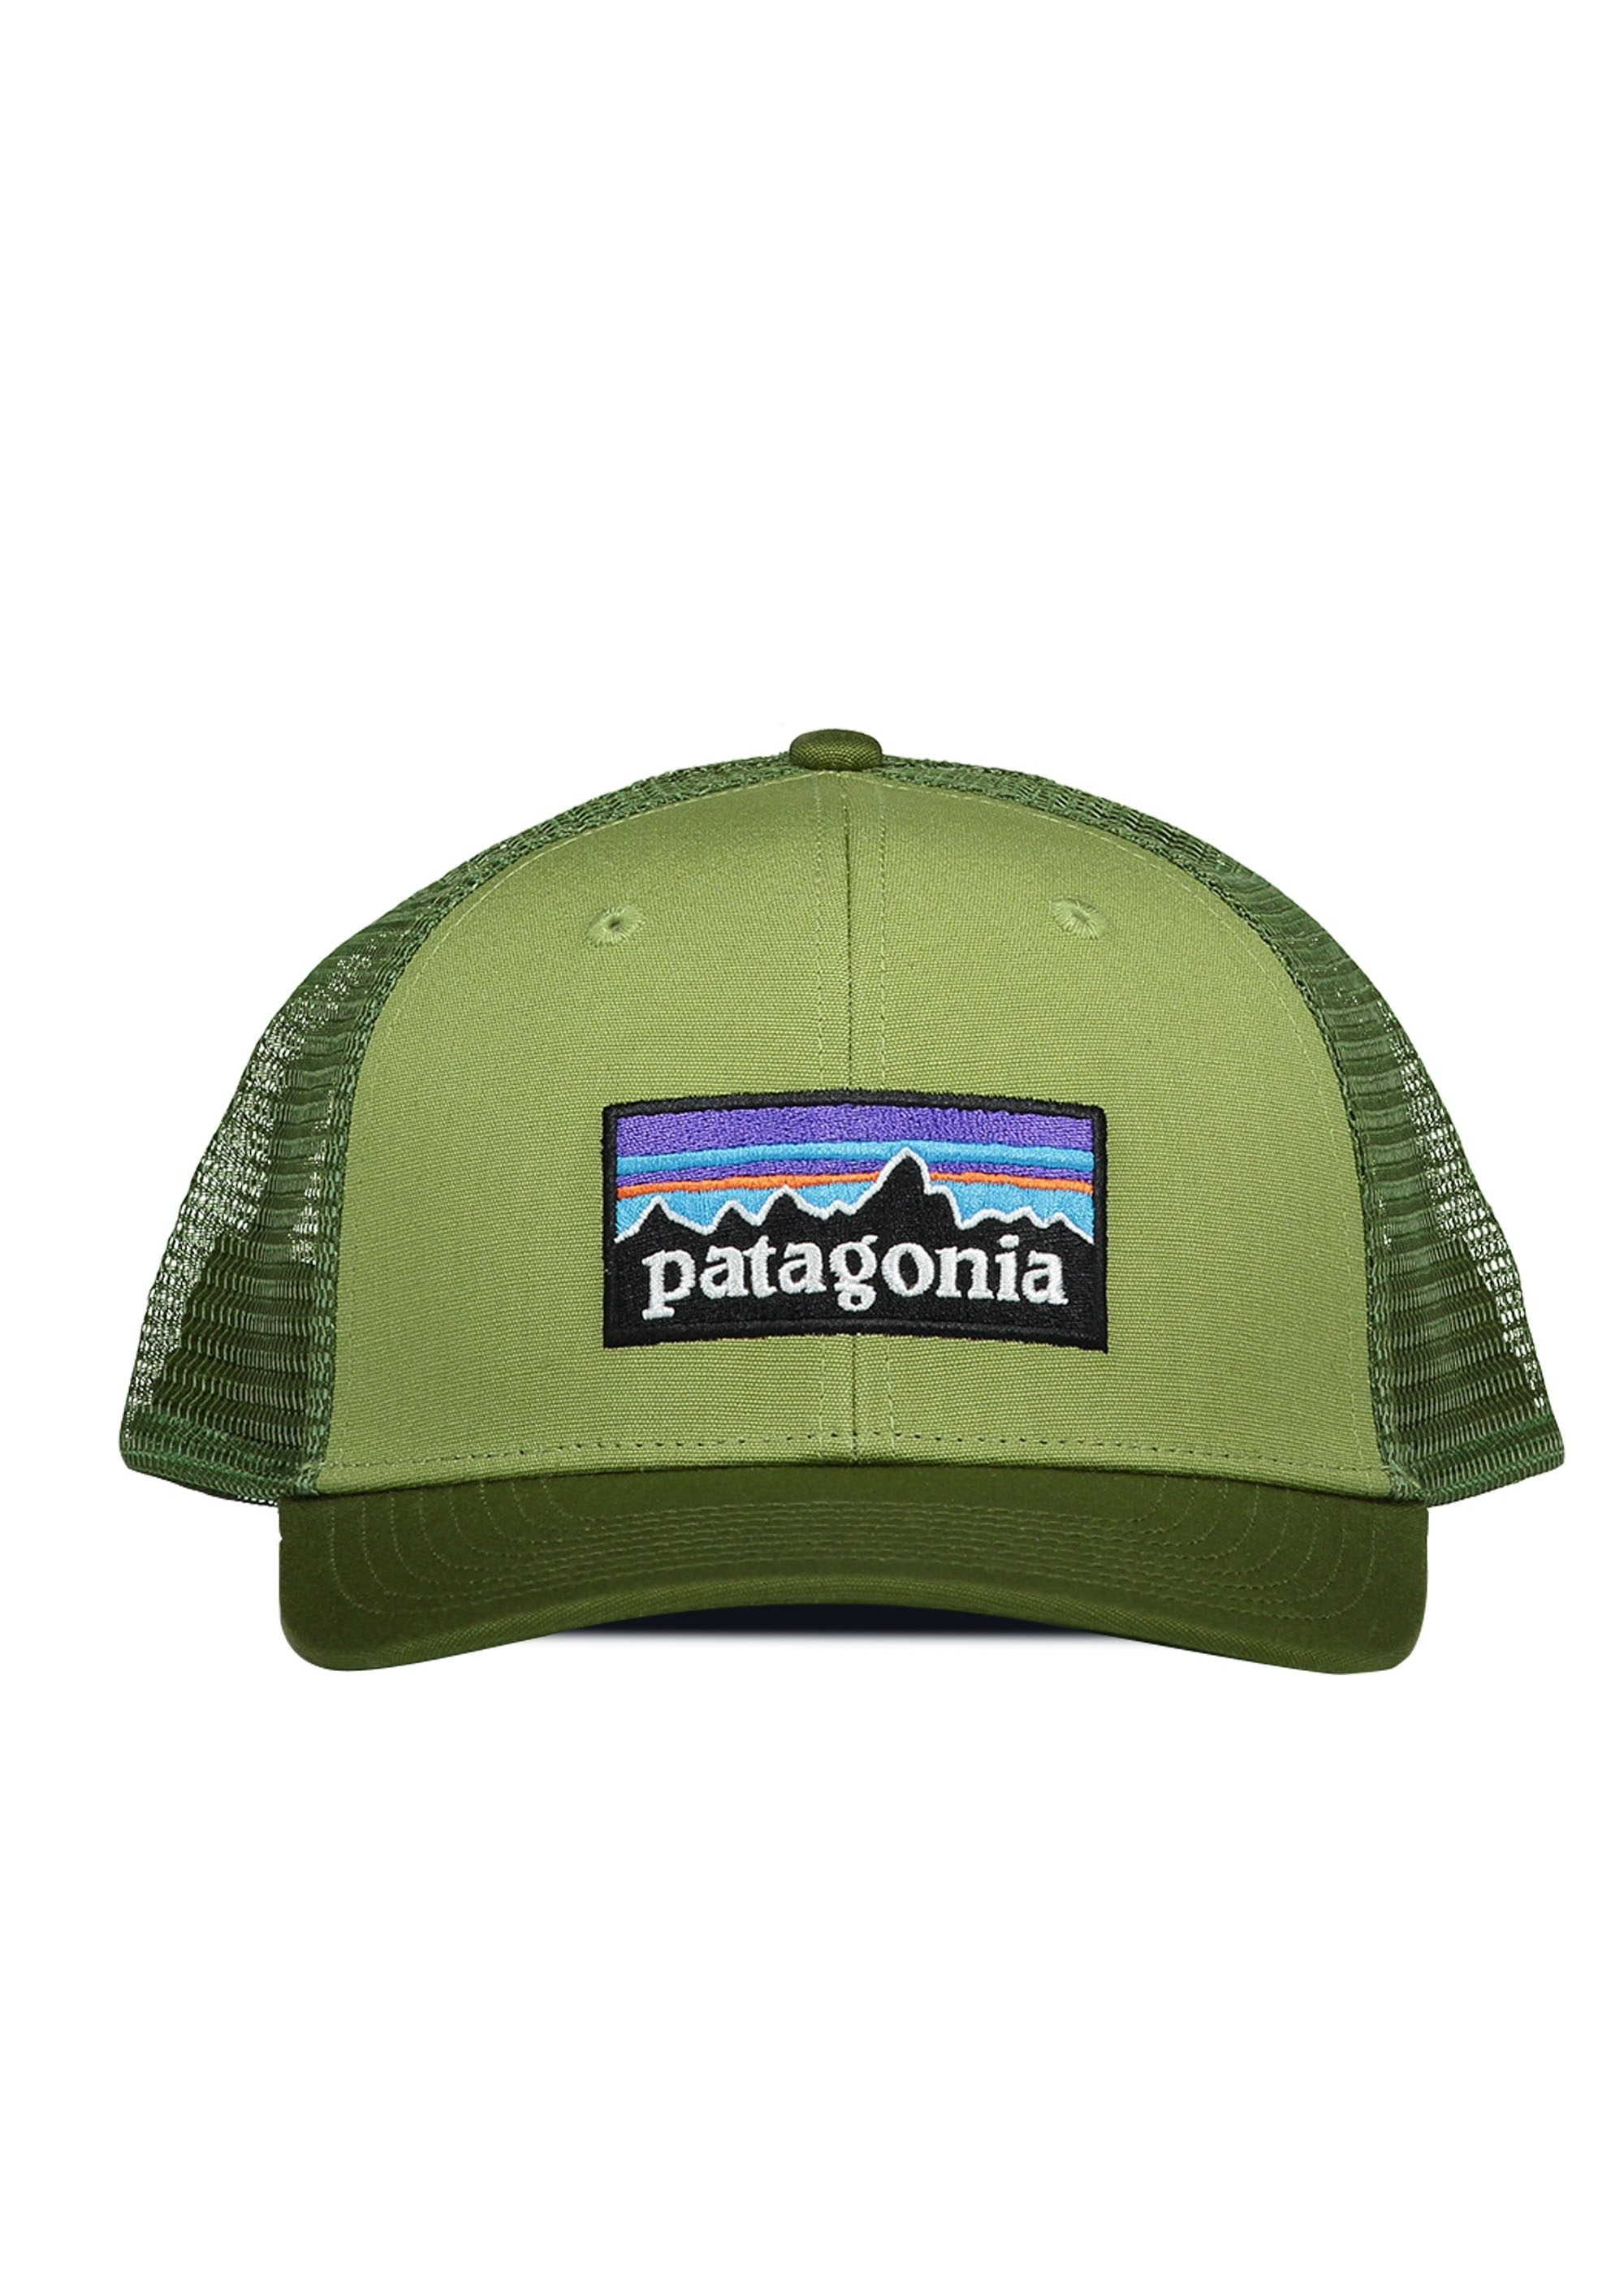 Patagonia P-6 Logo Trucker Hat - Crag Green - Headwear from Triads UK 2708f27723d